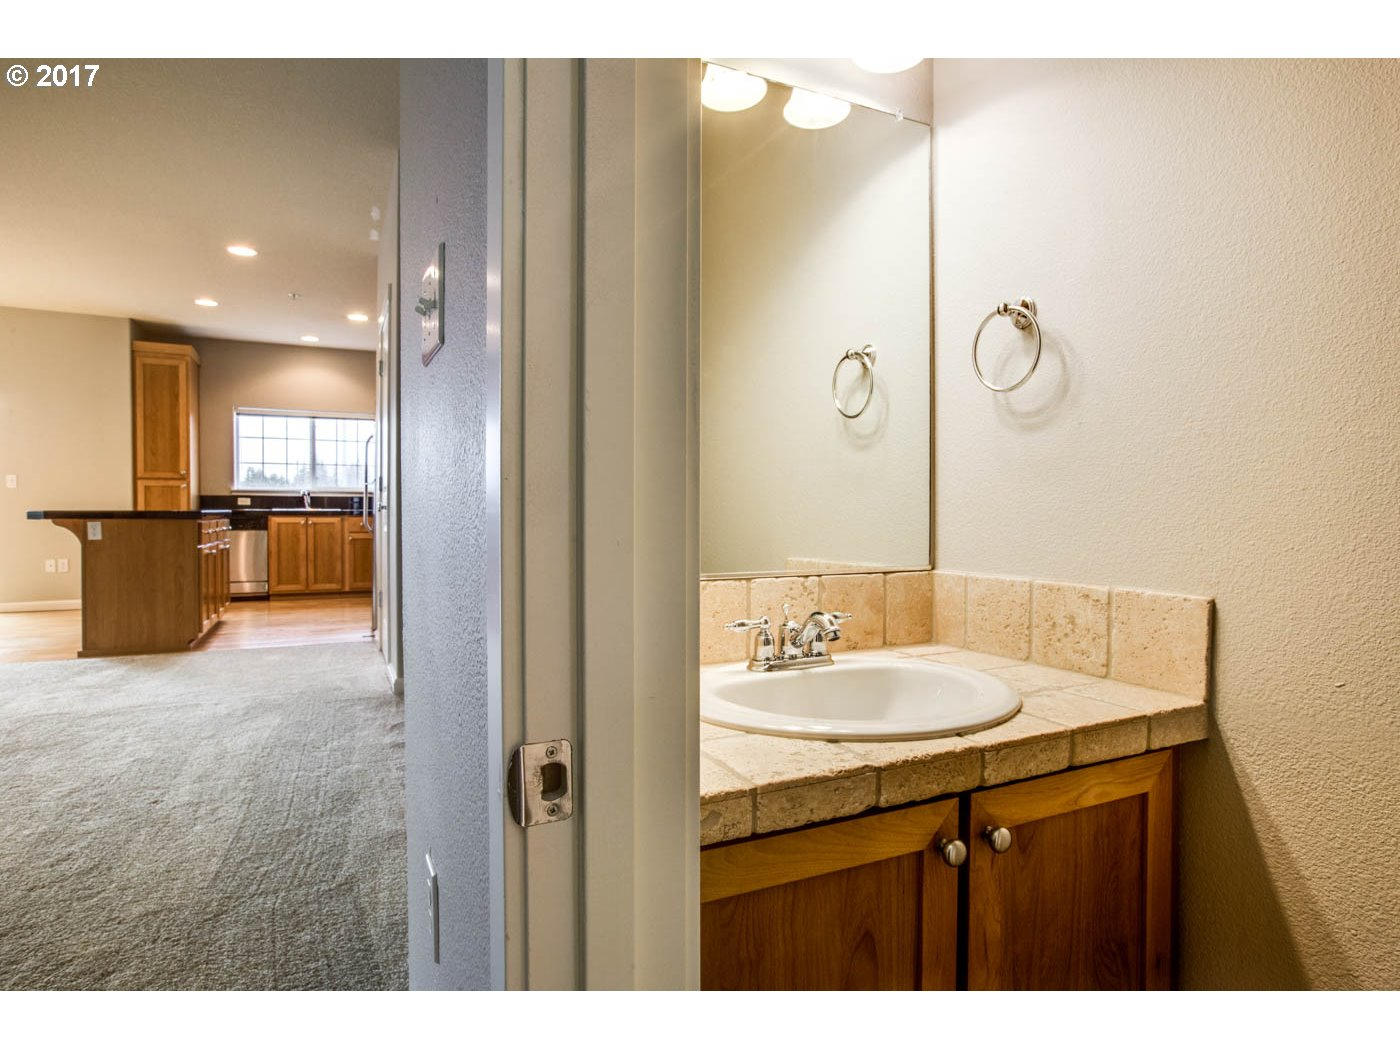 1460 sq. ft 3 bedrooms 2 bathrooms  House For Sale,Beaverton, OR